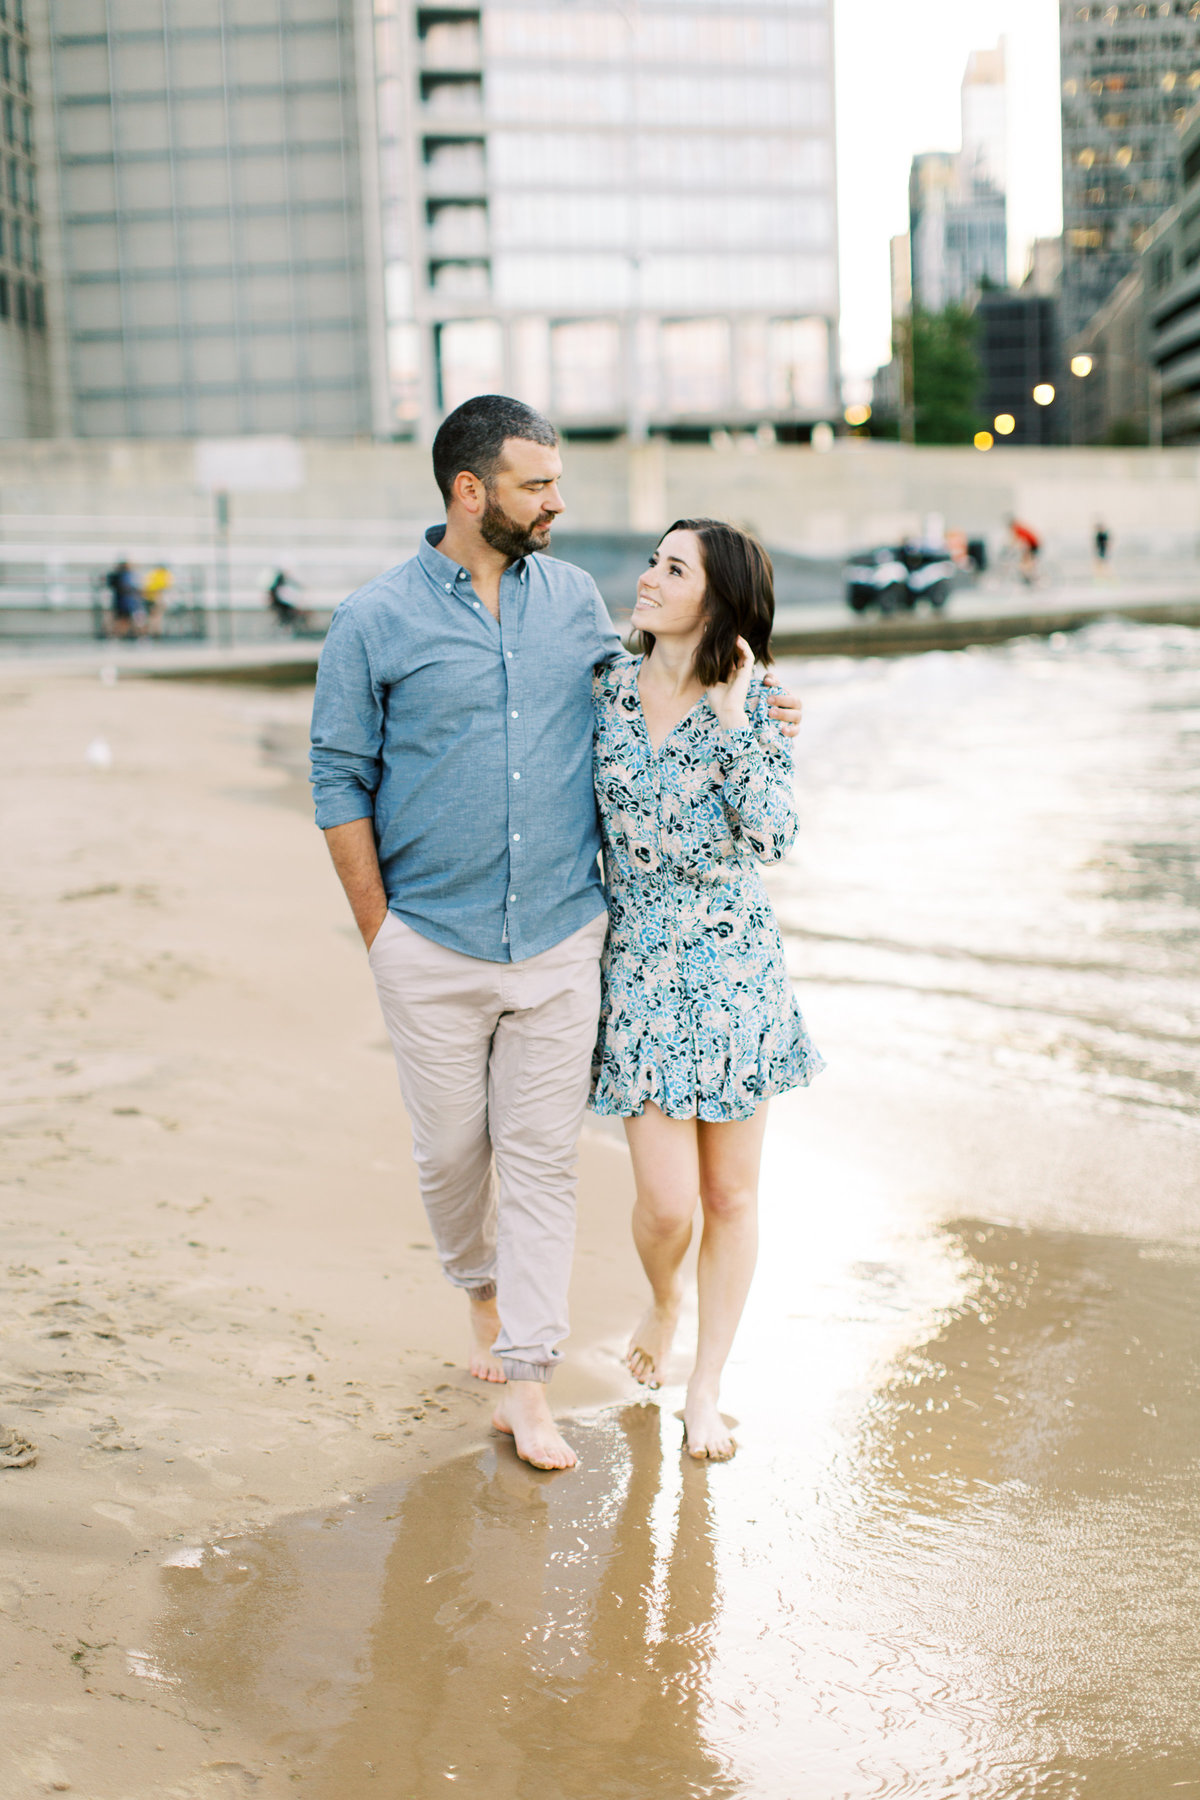 AllieDavid_Engagement_September042019_112